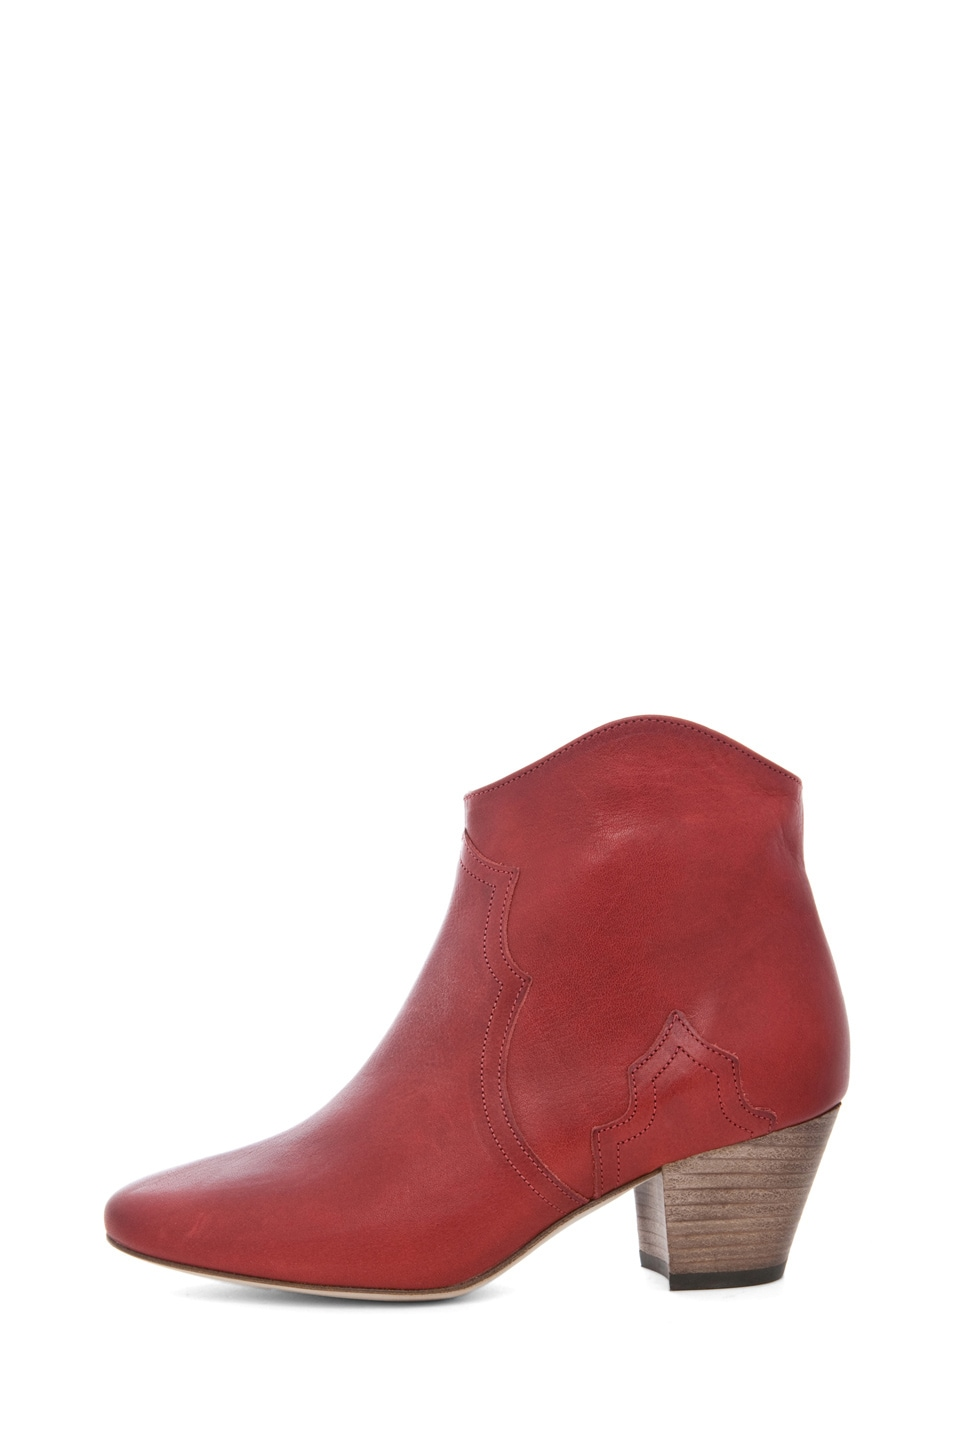 Image 1 of Isabel Marant Dicker Leather Bootie in Bordeaux